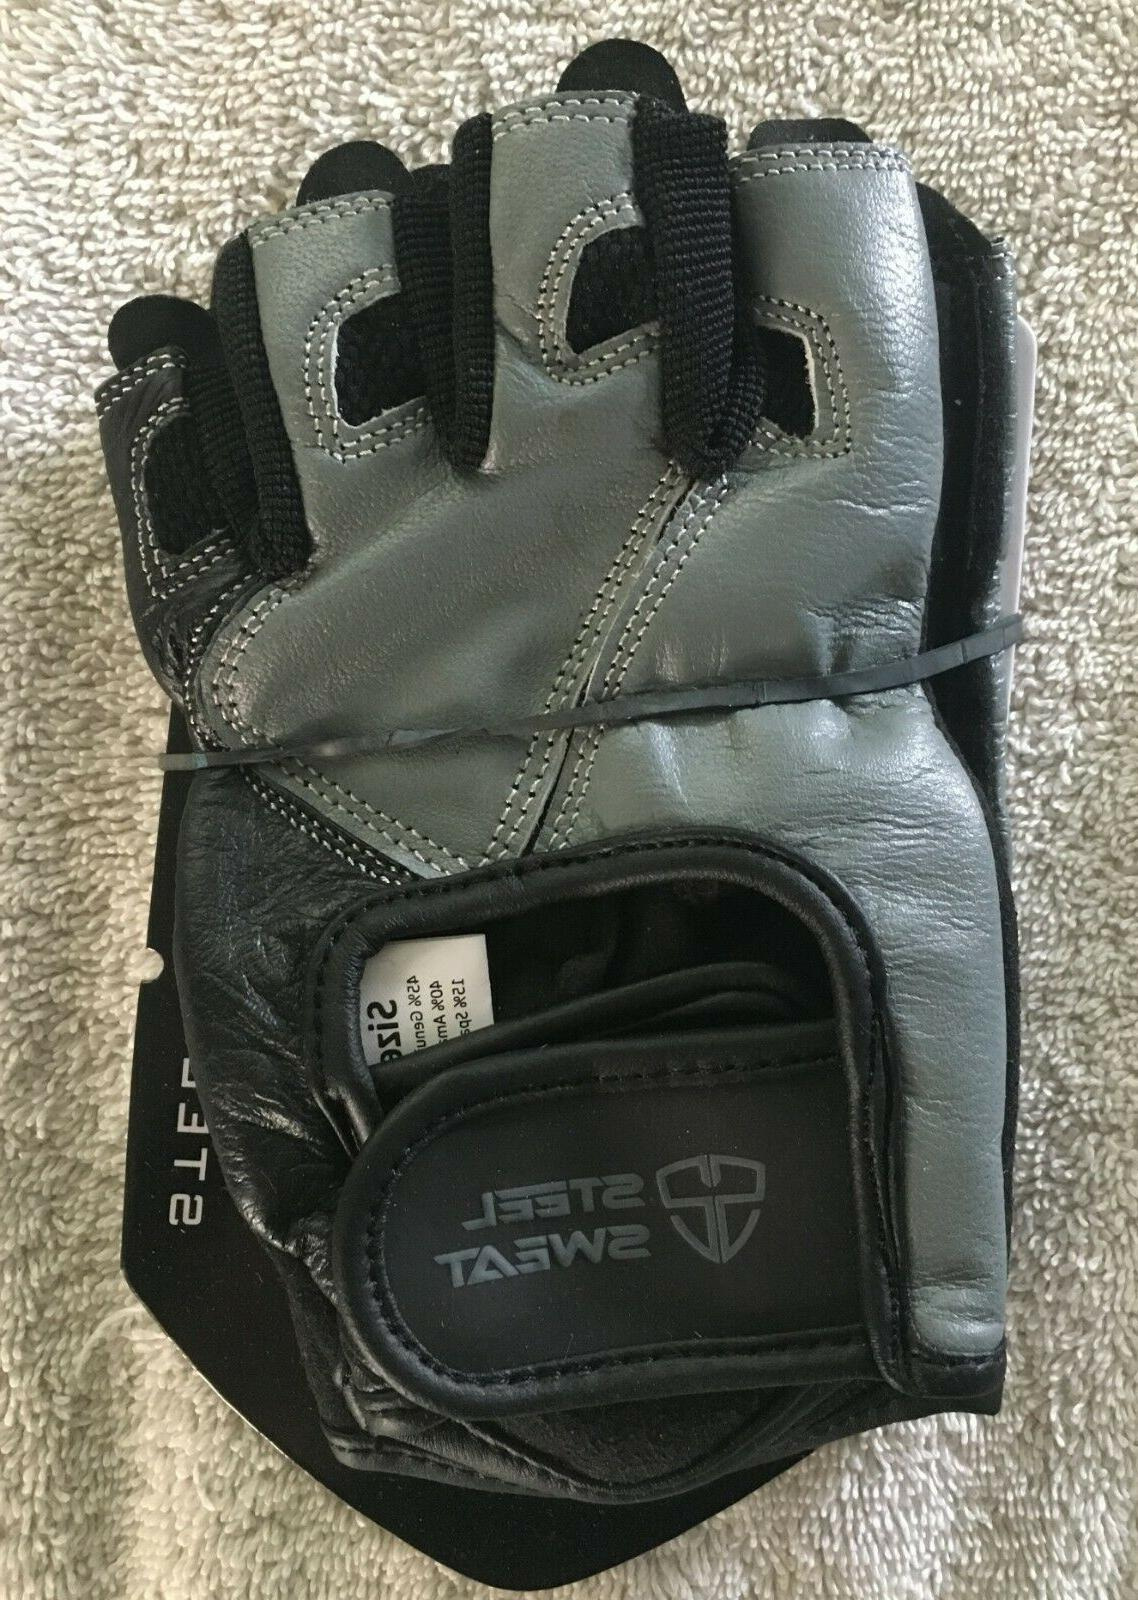 steel sweat scarr gloves s small workout